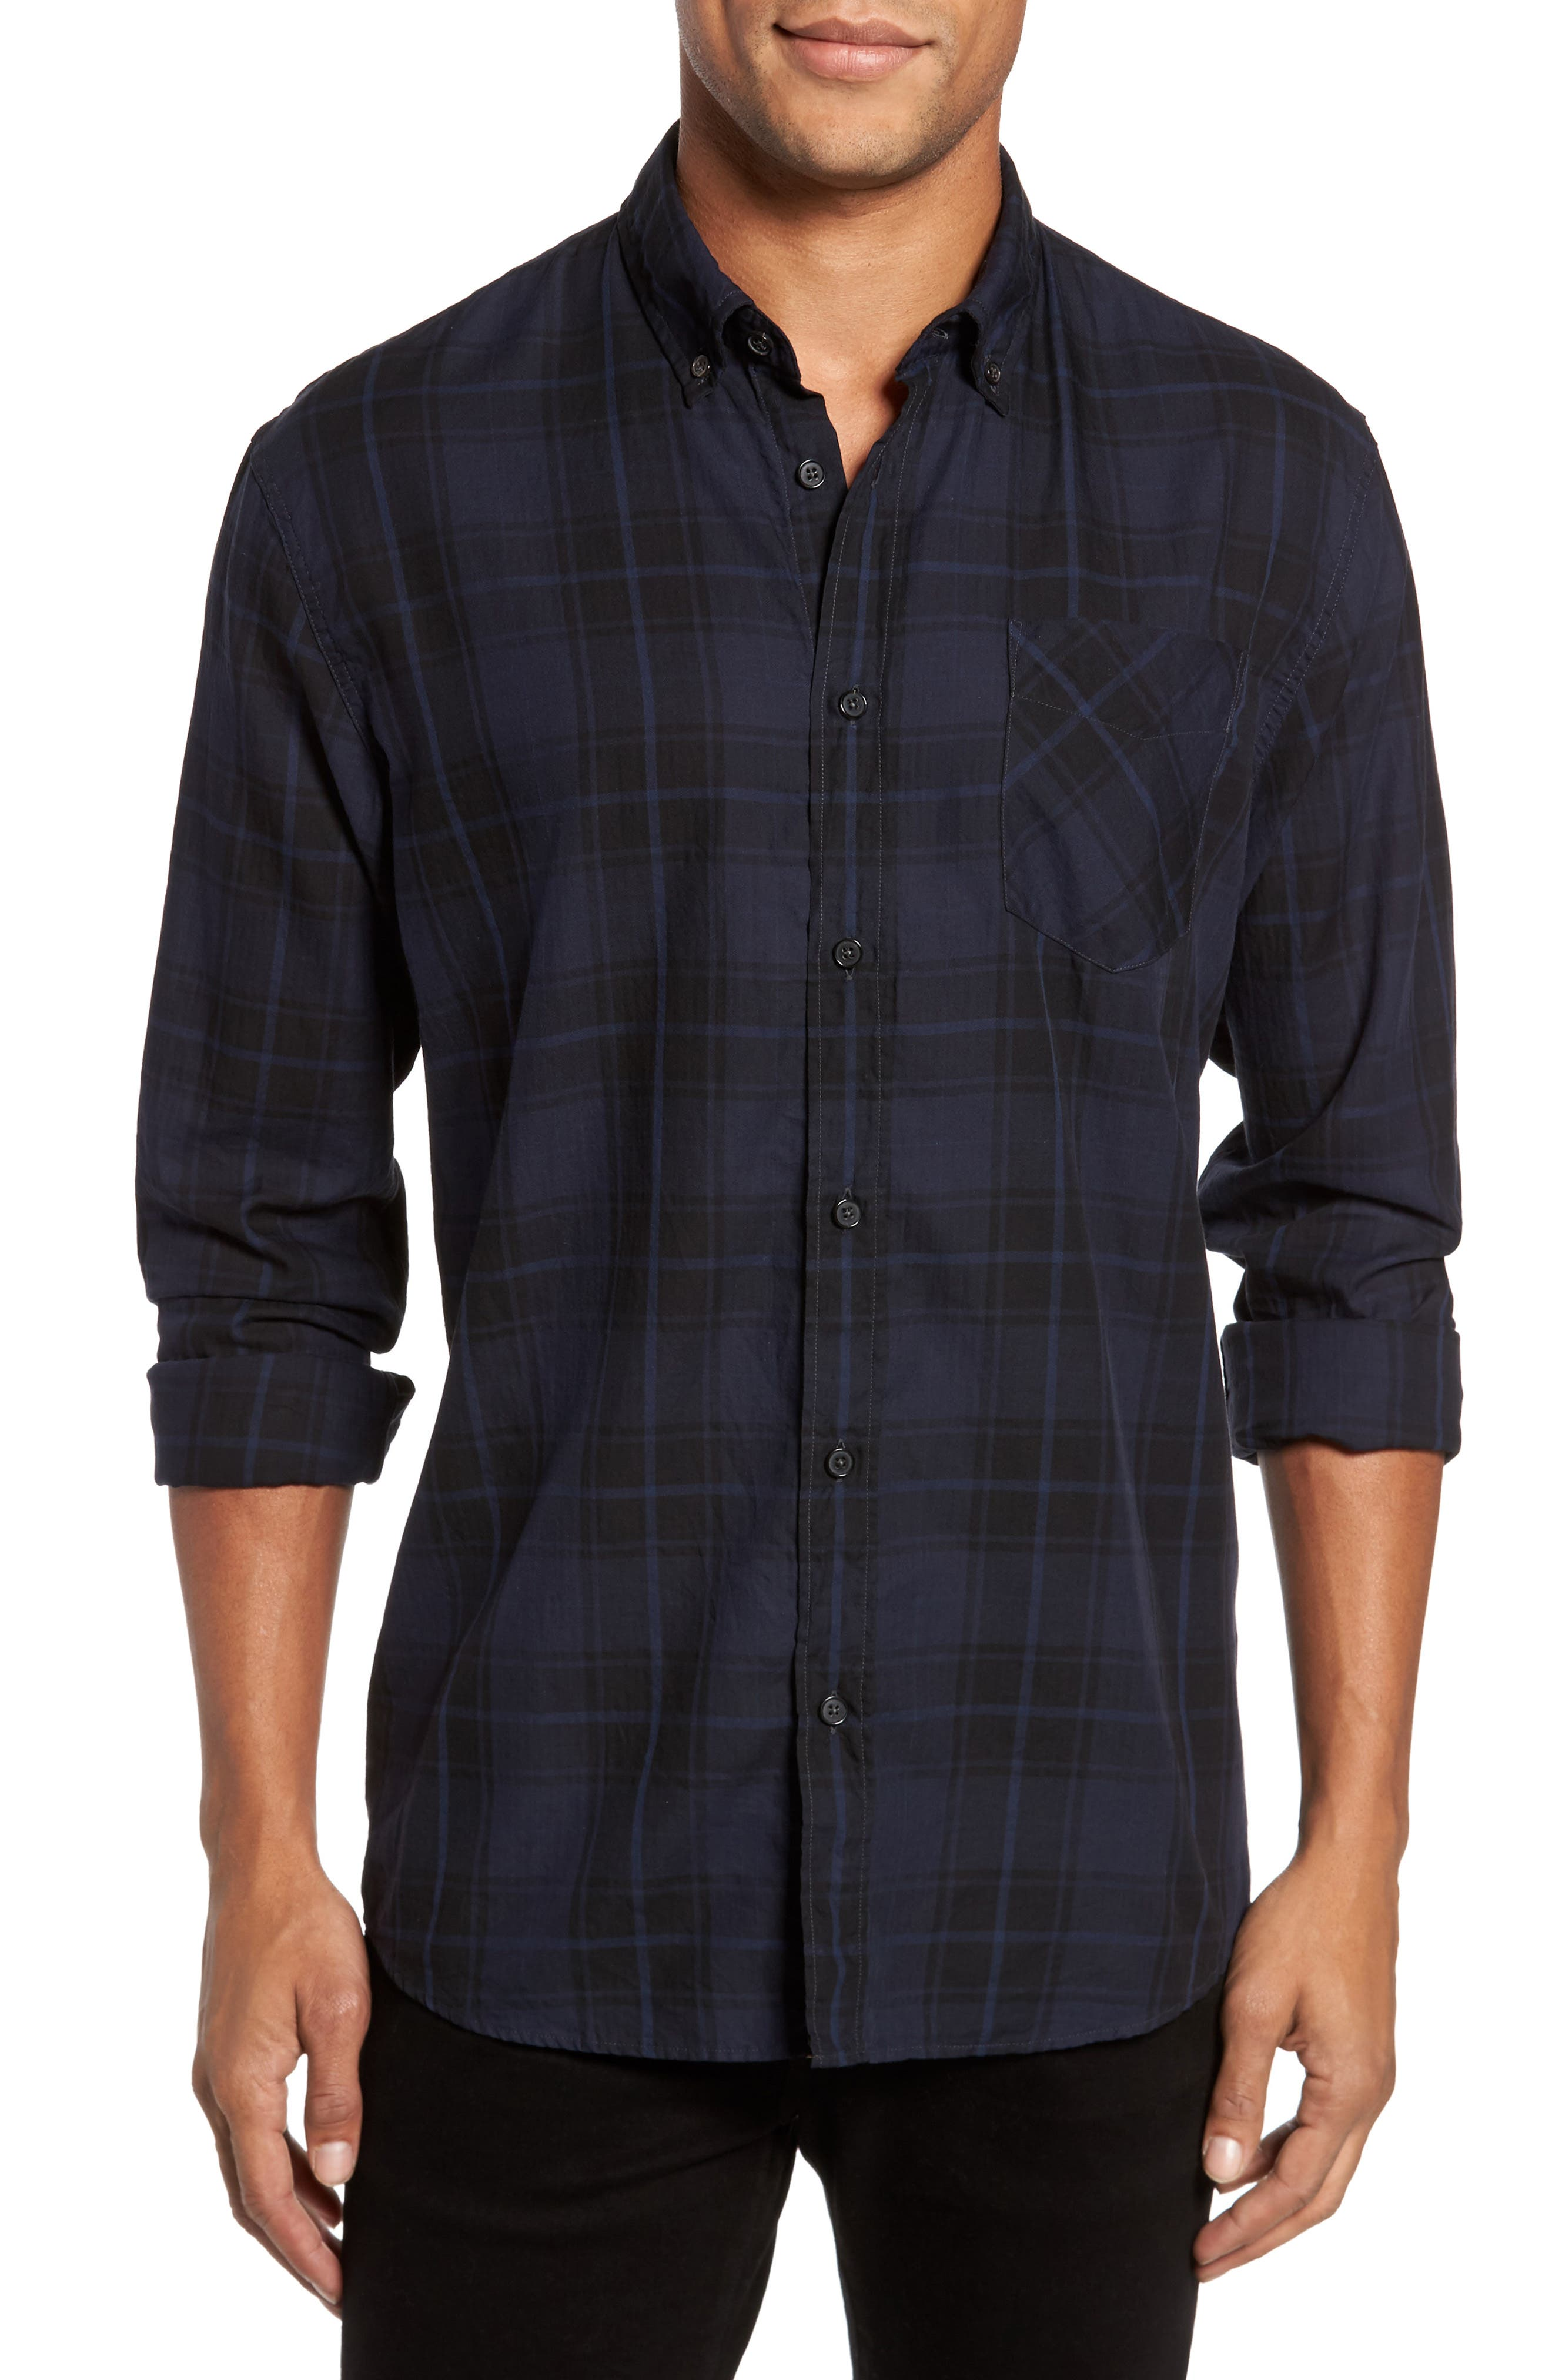 Wallace Slim Fit Sport Shirt,                         Main,                         color, Navy/ Black